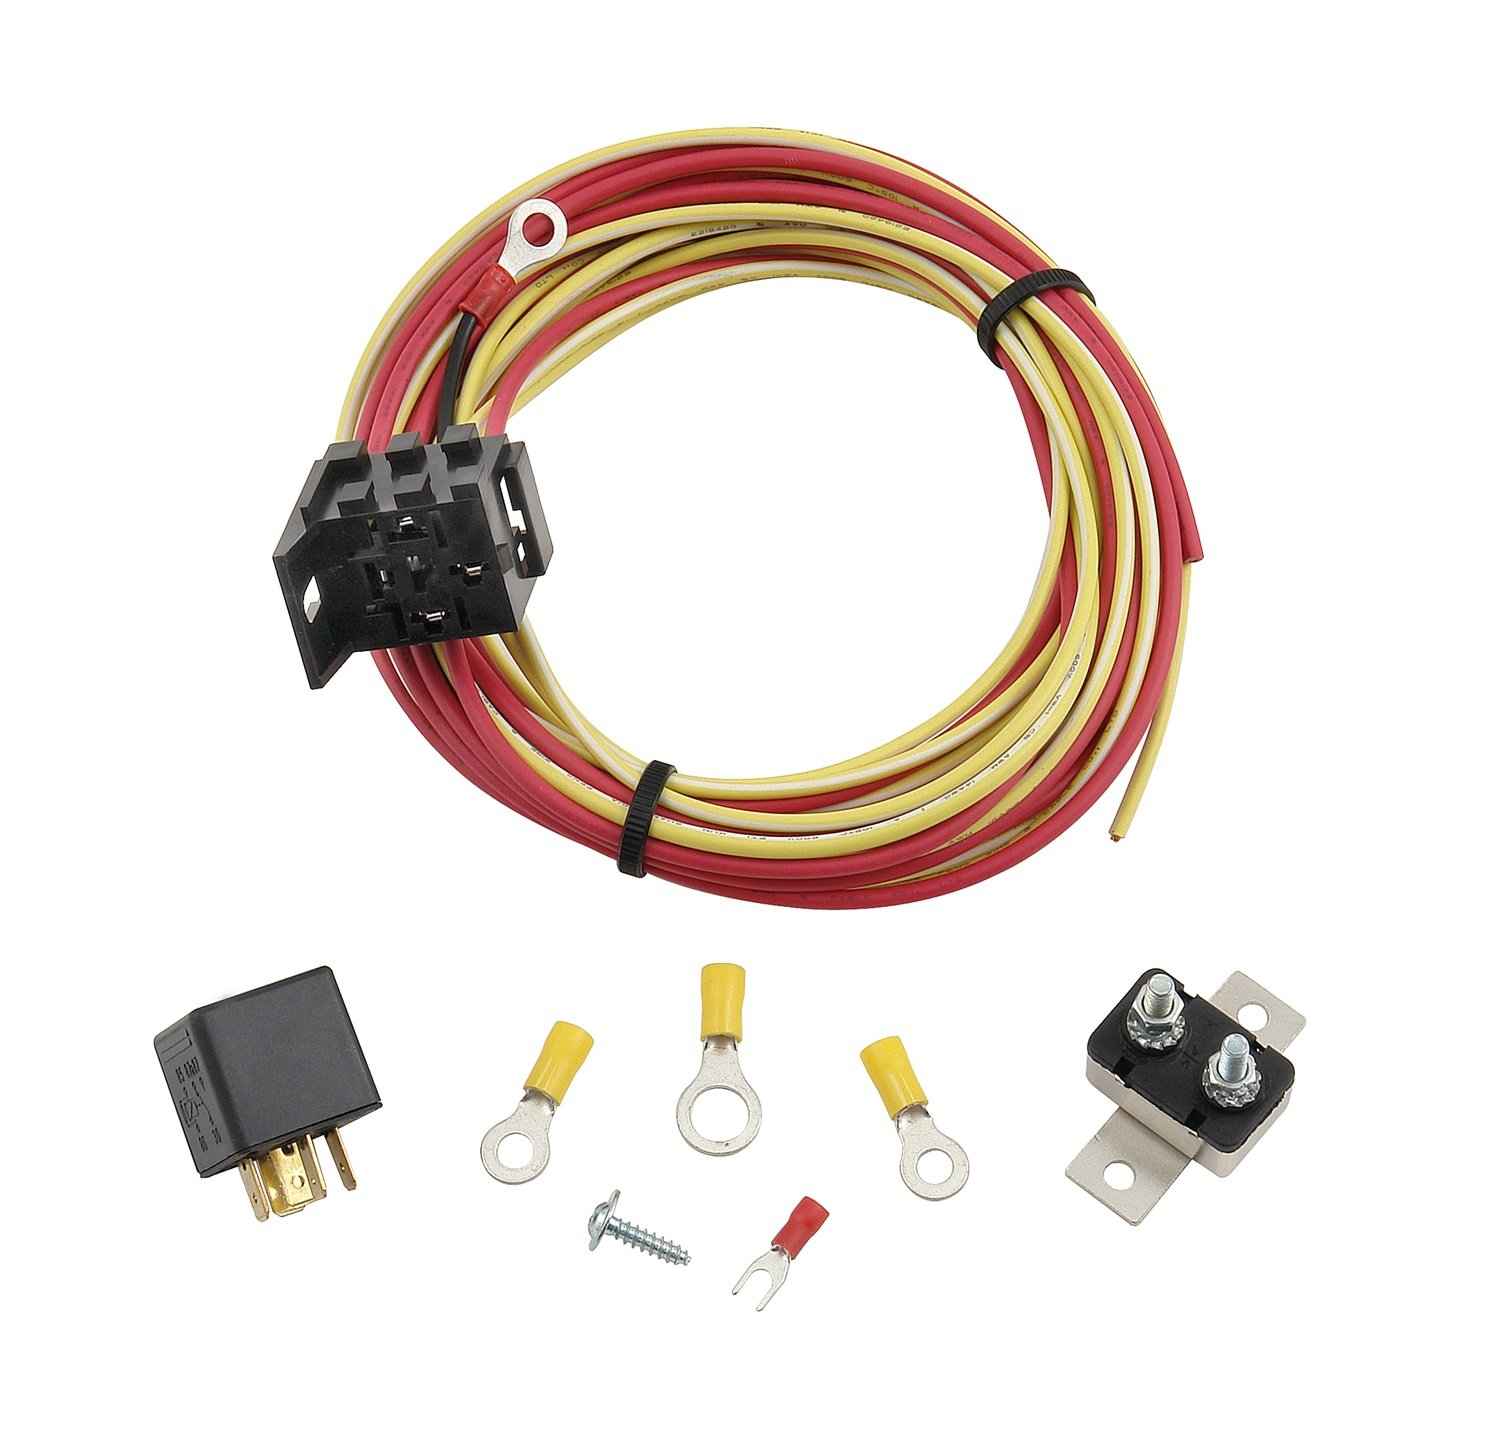 Mr. Gasket 40H Relay and Wiring Kit for 40 Amp Electric Fuel Pump by Mr. Gasket